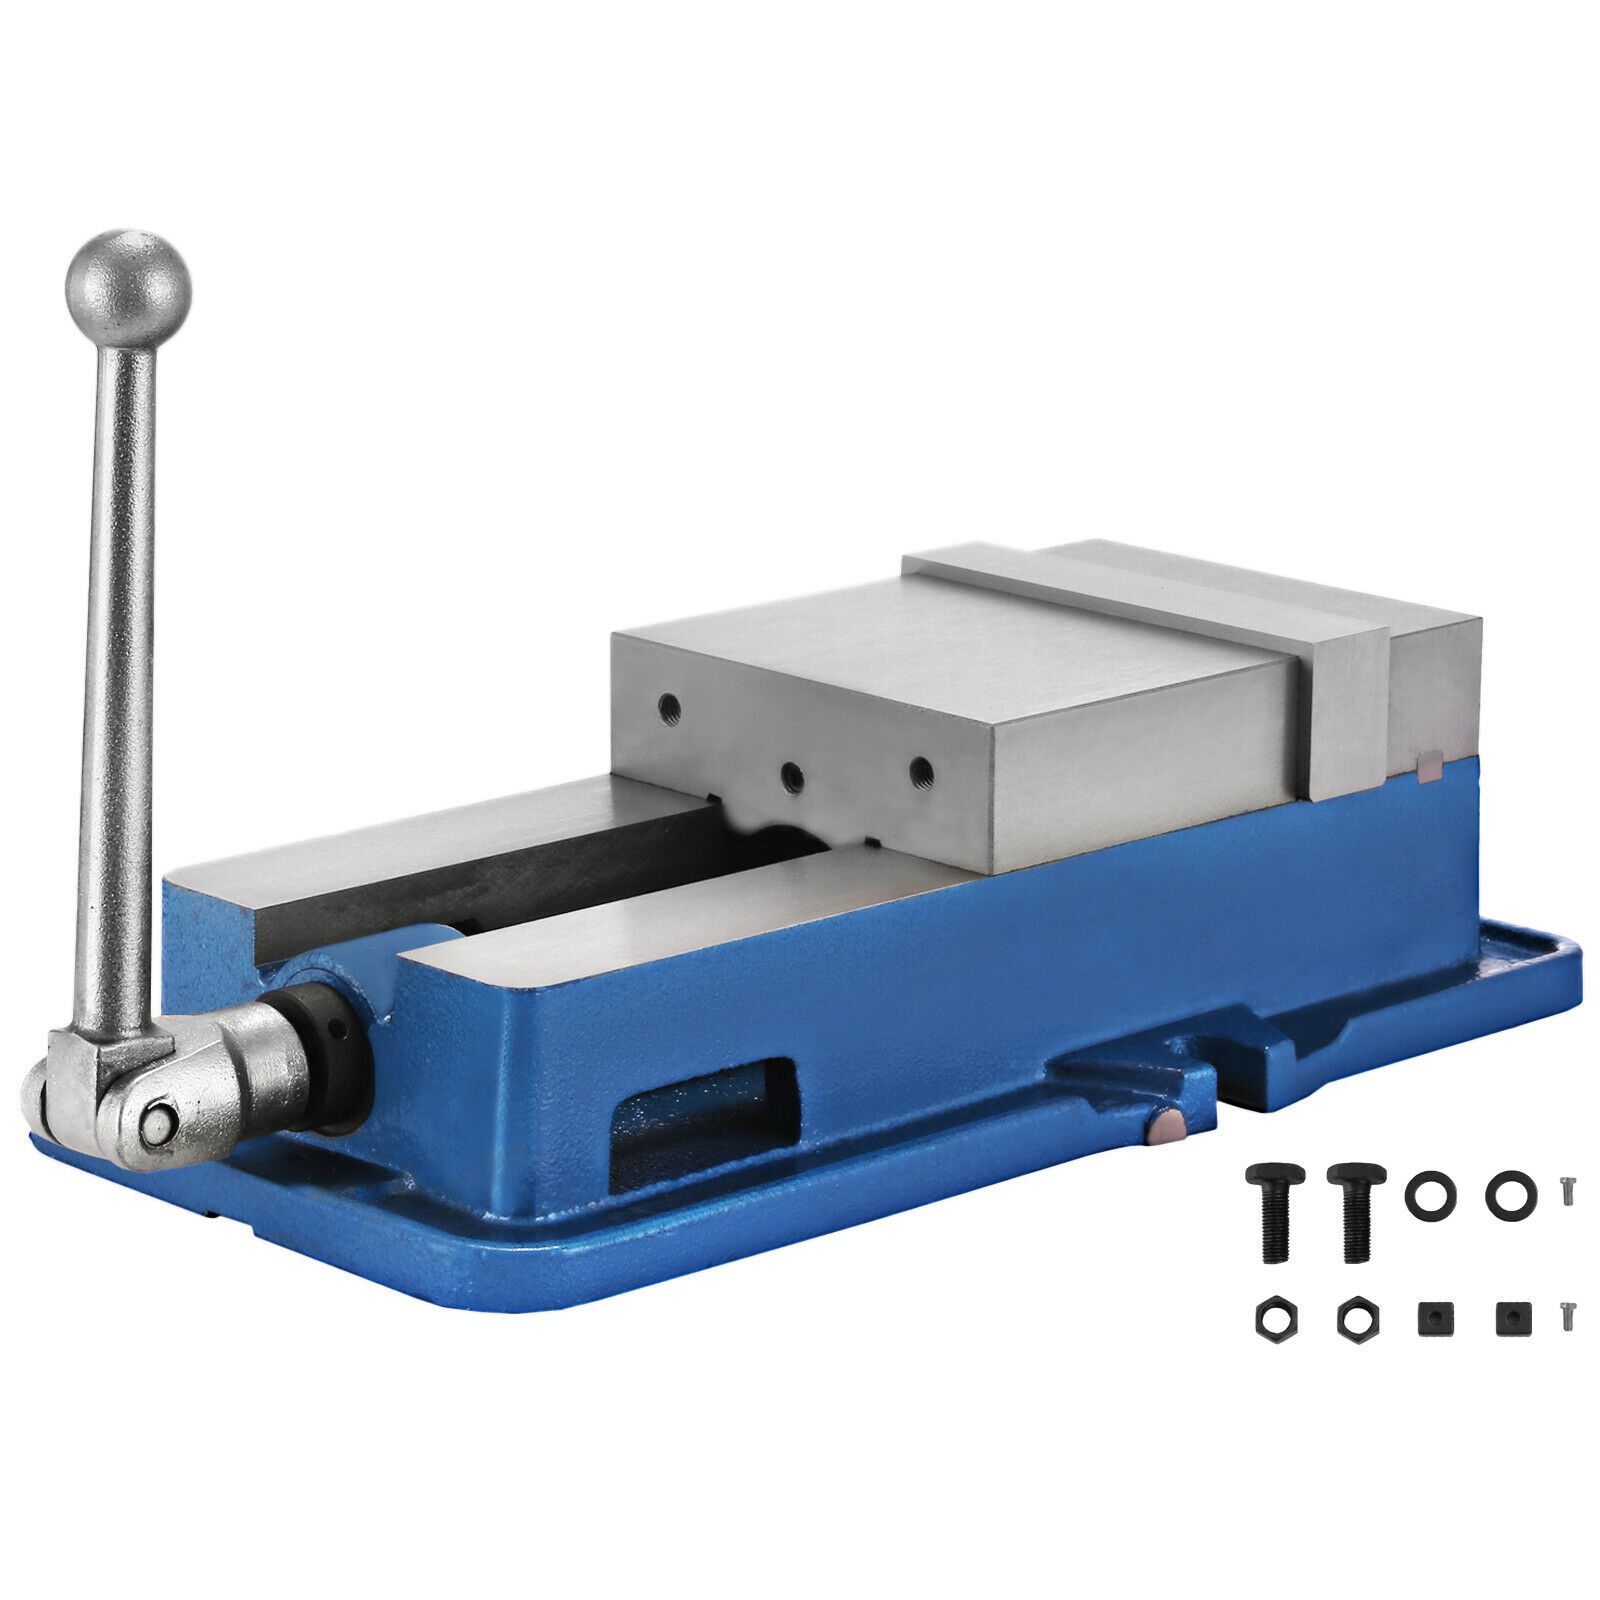 6 Inch ACCU Lock Down Vise Precision Milling Vice Jaw Width Drill Press Vise Milling Drilling Machine Bench Clamp Clamping Vice